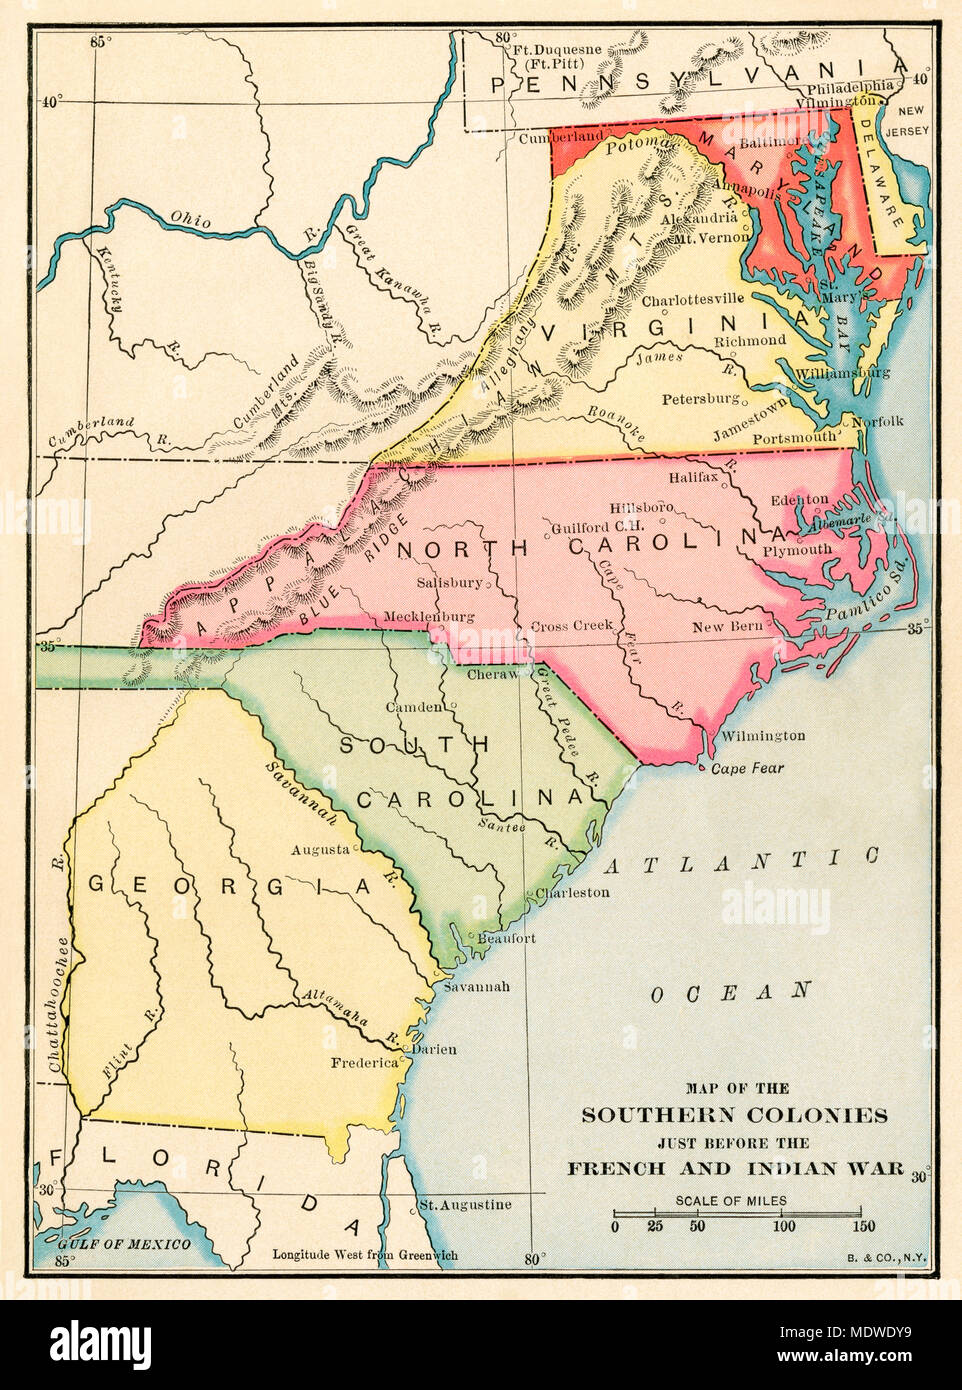 Southern colonies just before the French and Indian War. Printed color lithograph - Stock Image